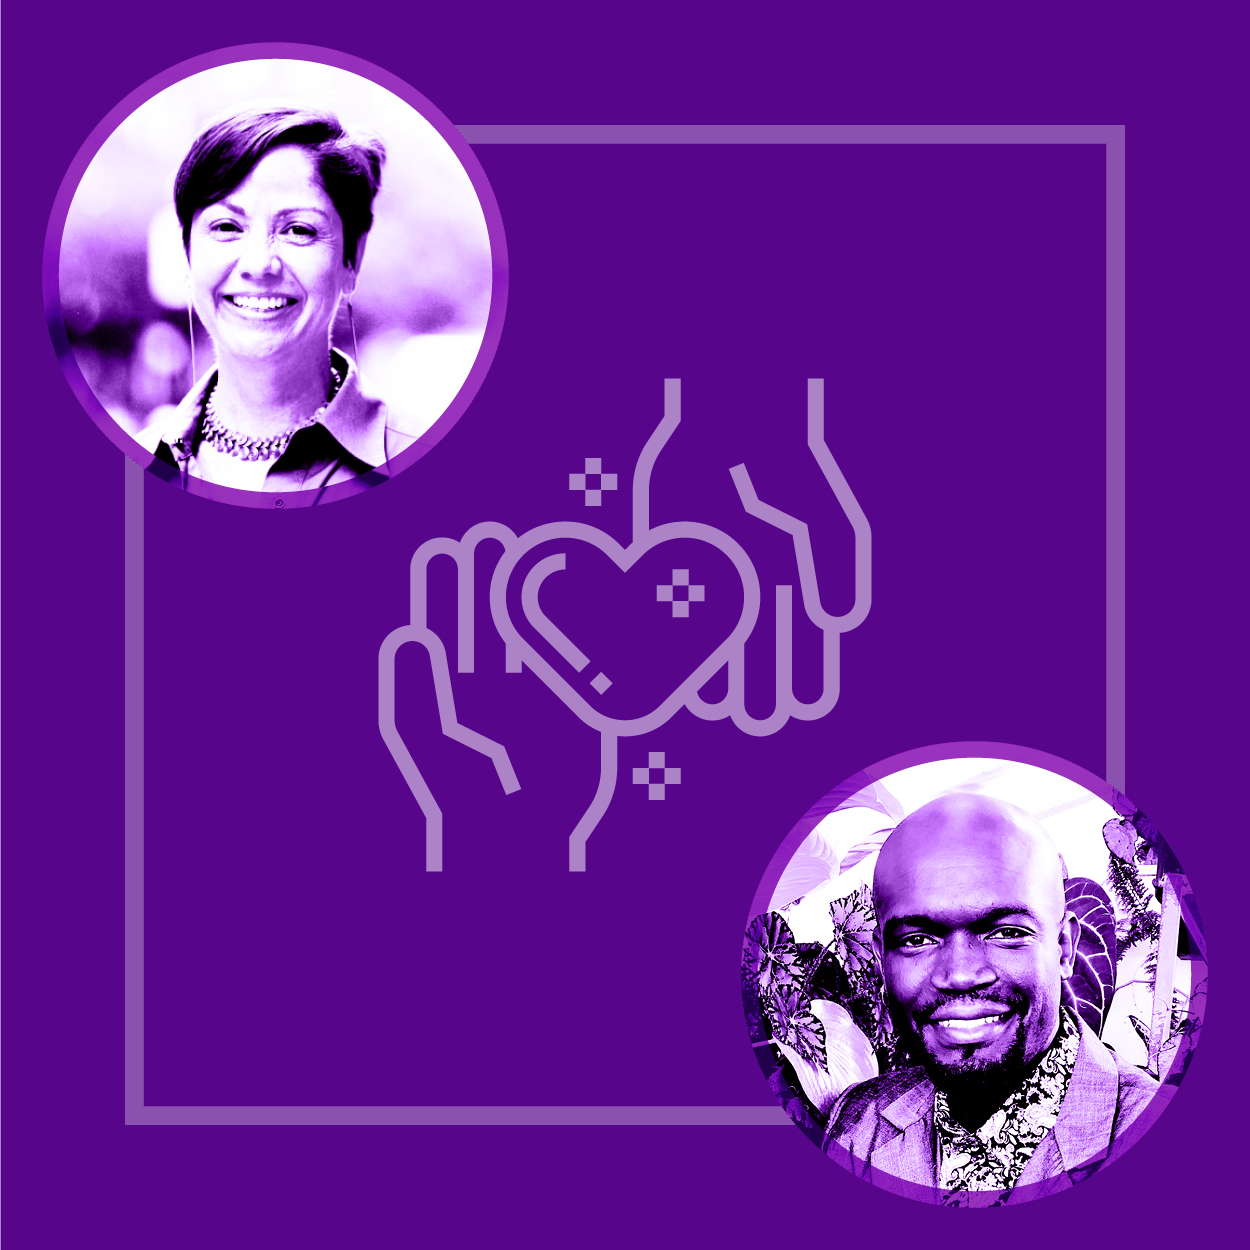 NYU Steinhardt faculty leads for Special Education Tamara Sewell and Shane-Anthony Smith are pictured alongside two hands with a heart.